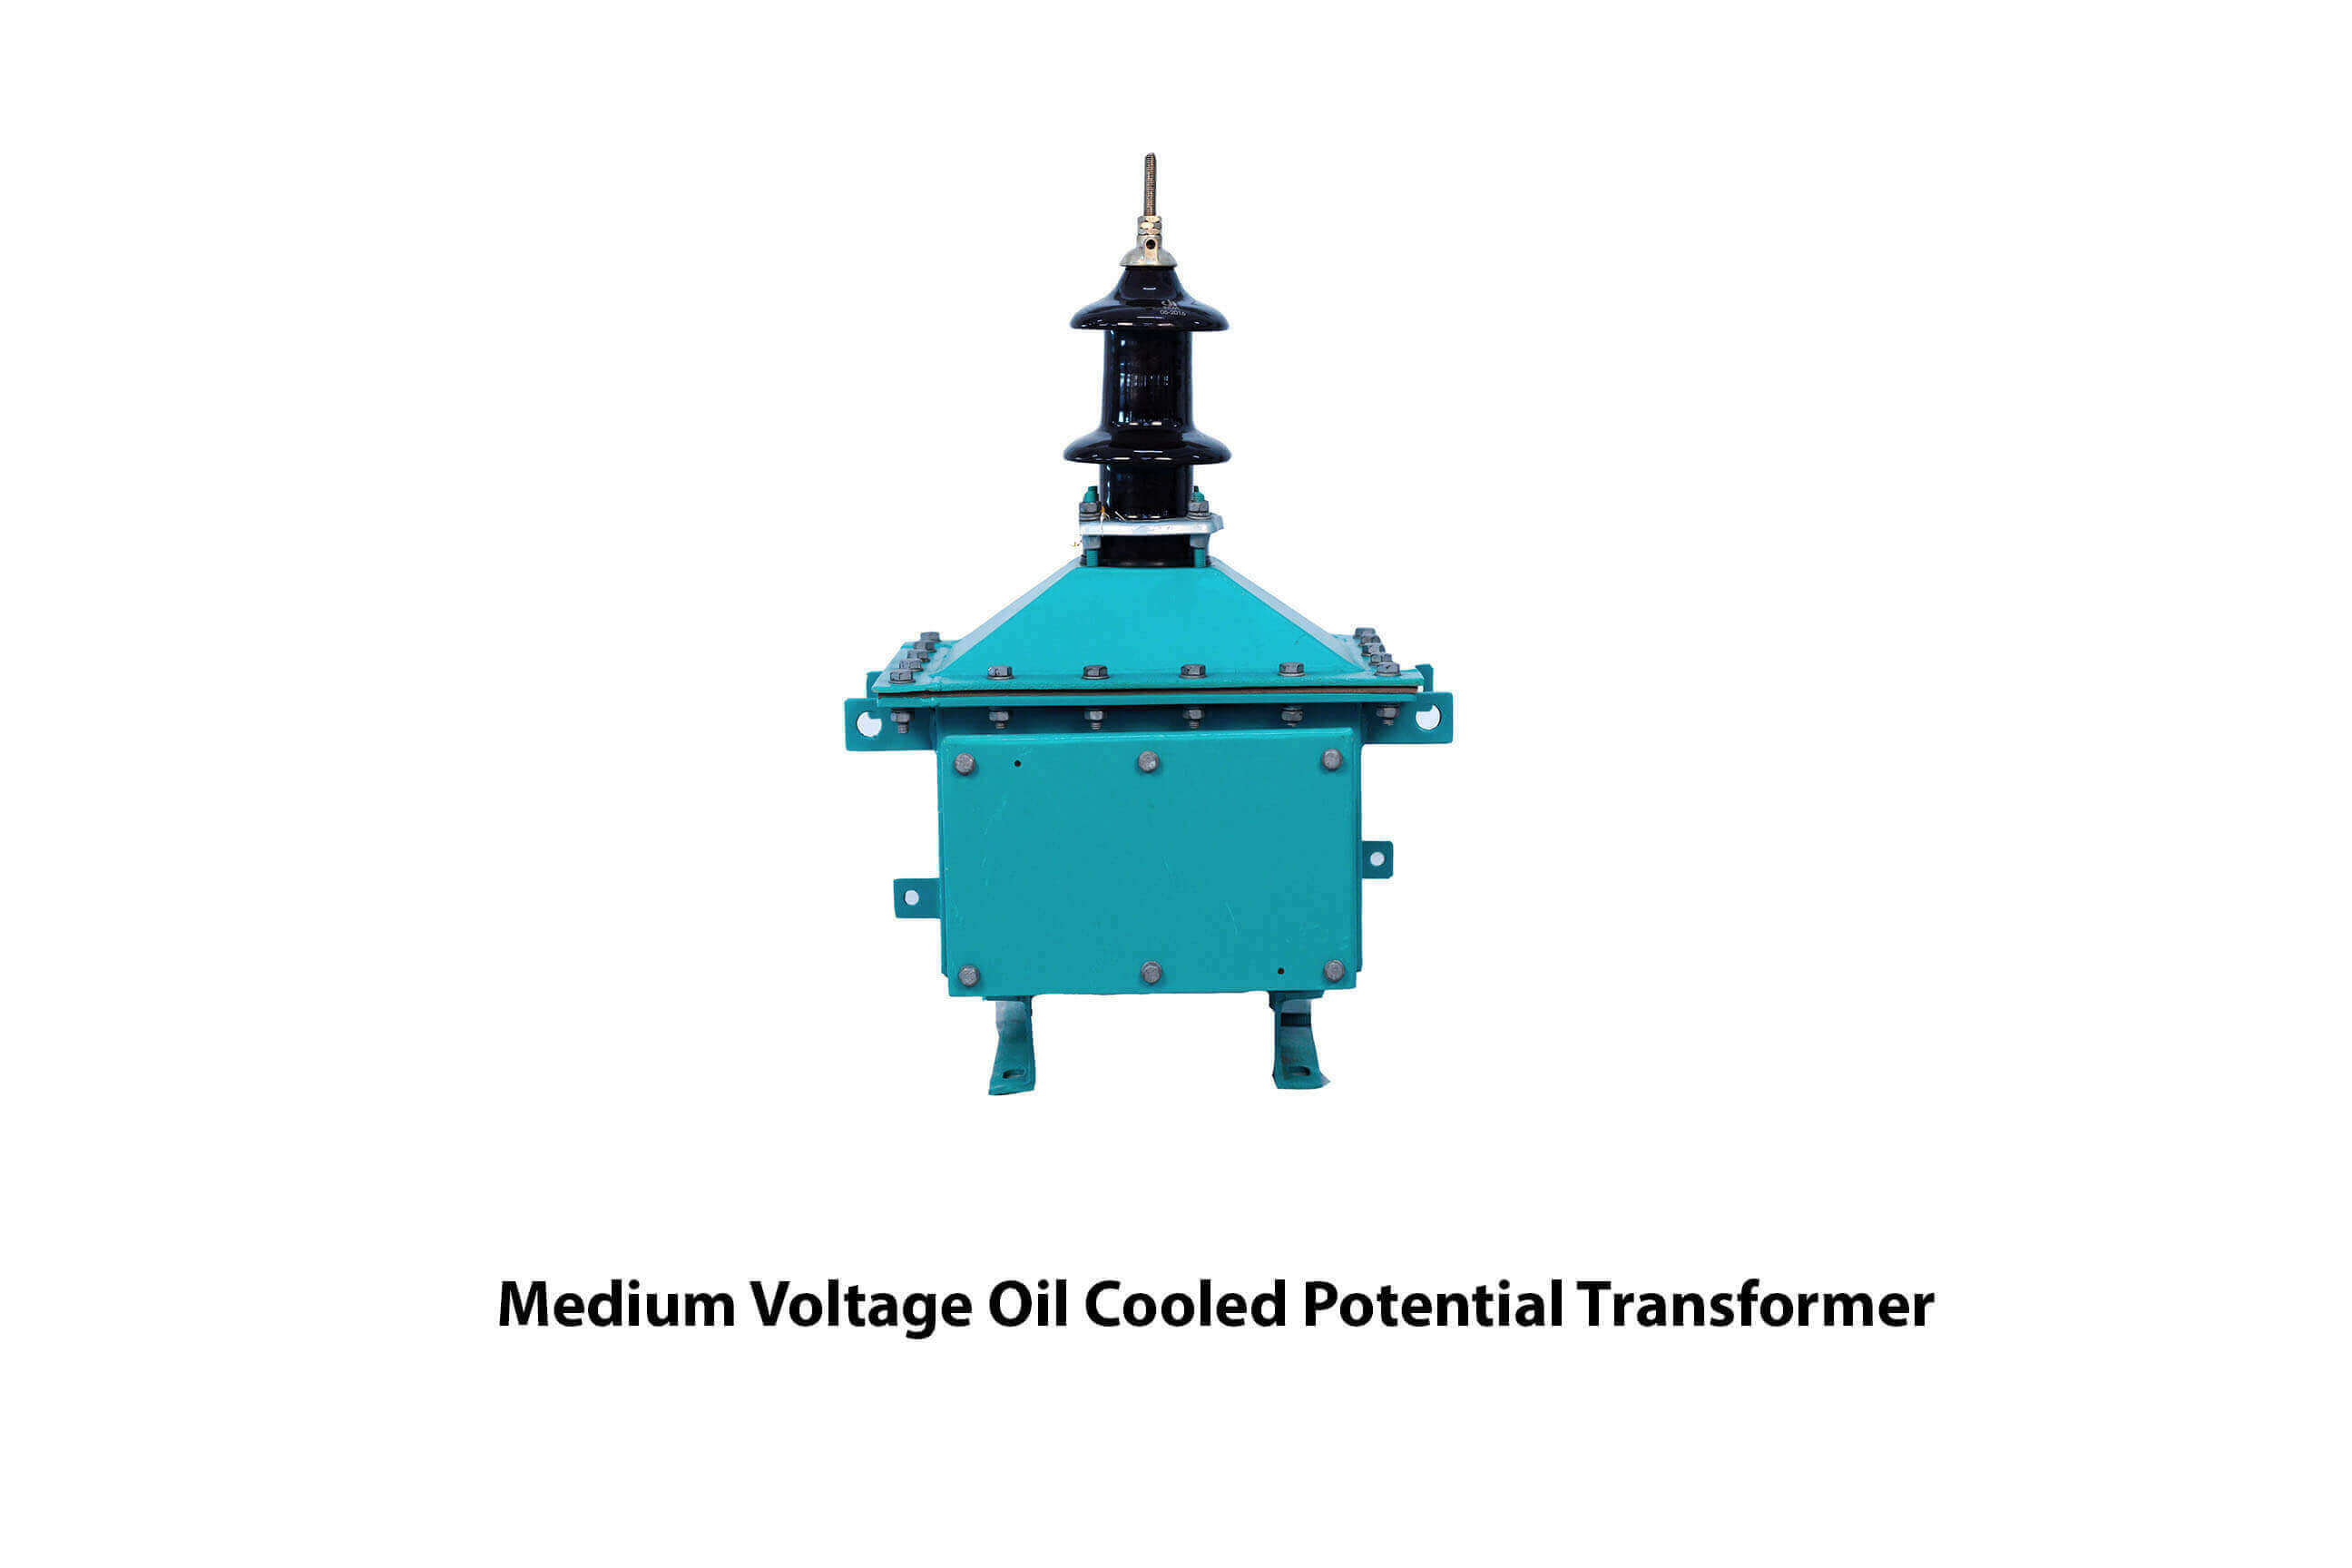 Medium Voltage Oil Cooled Potential Transformer